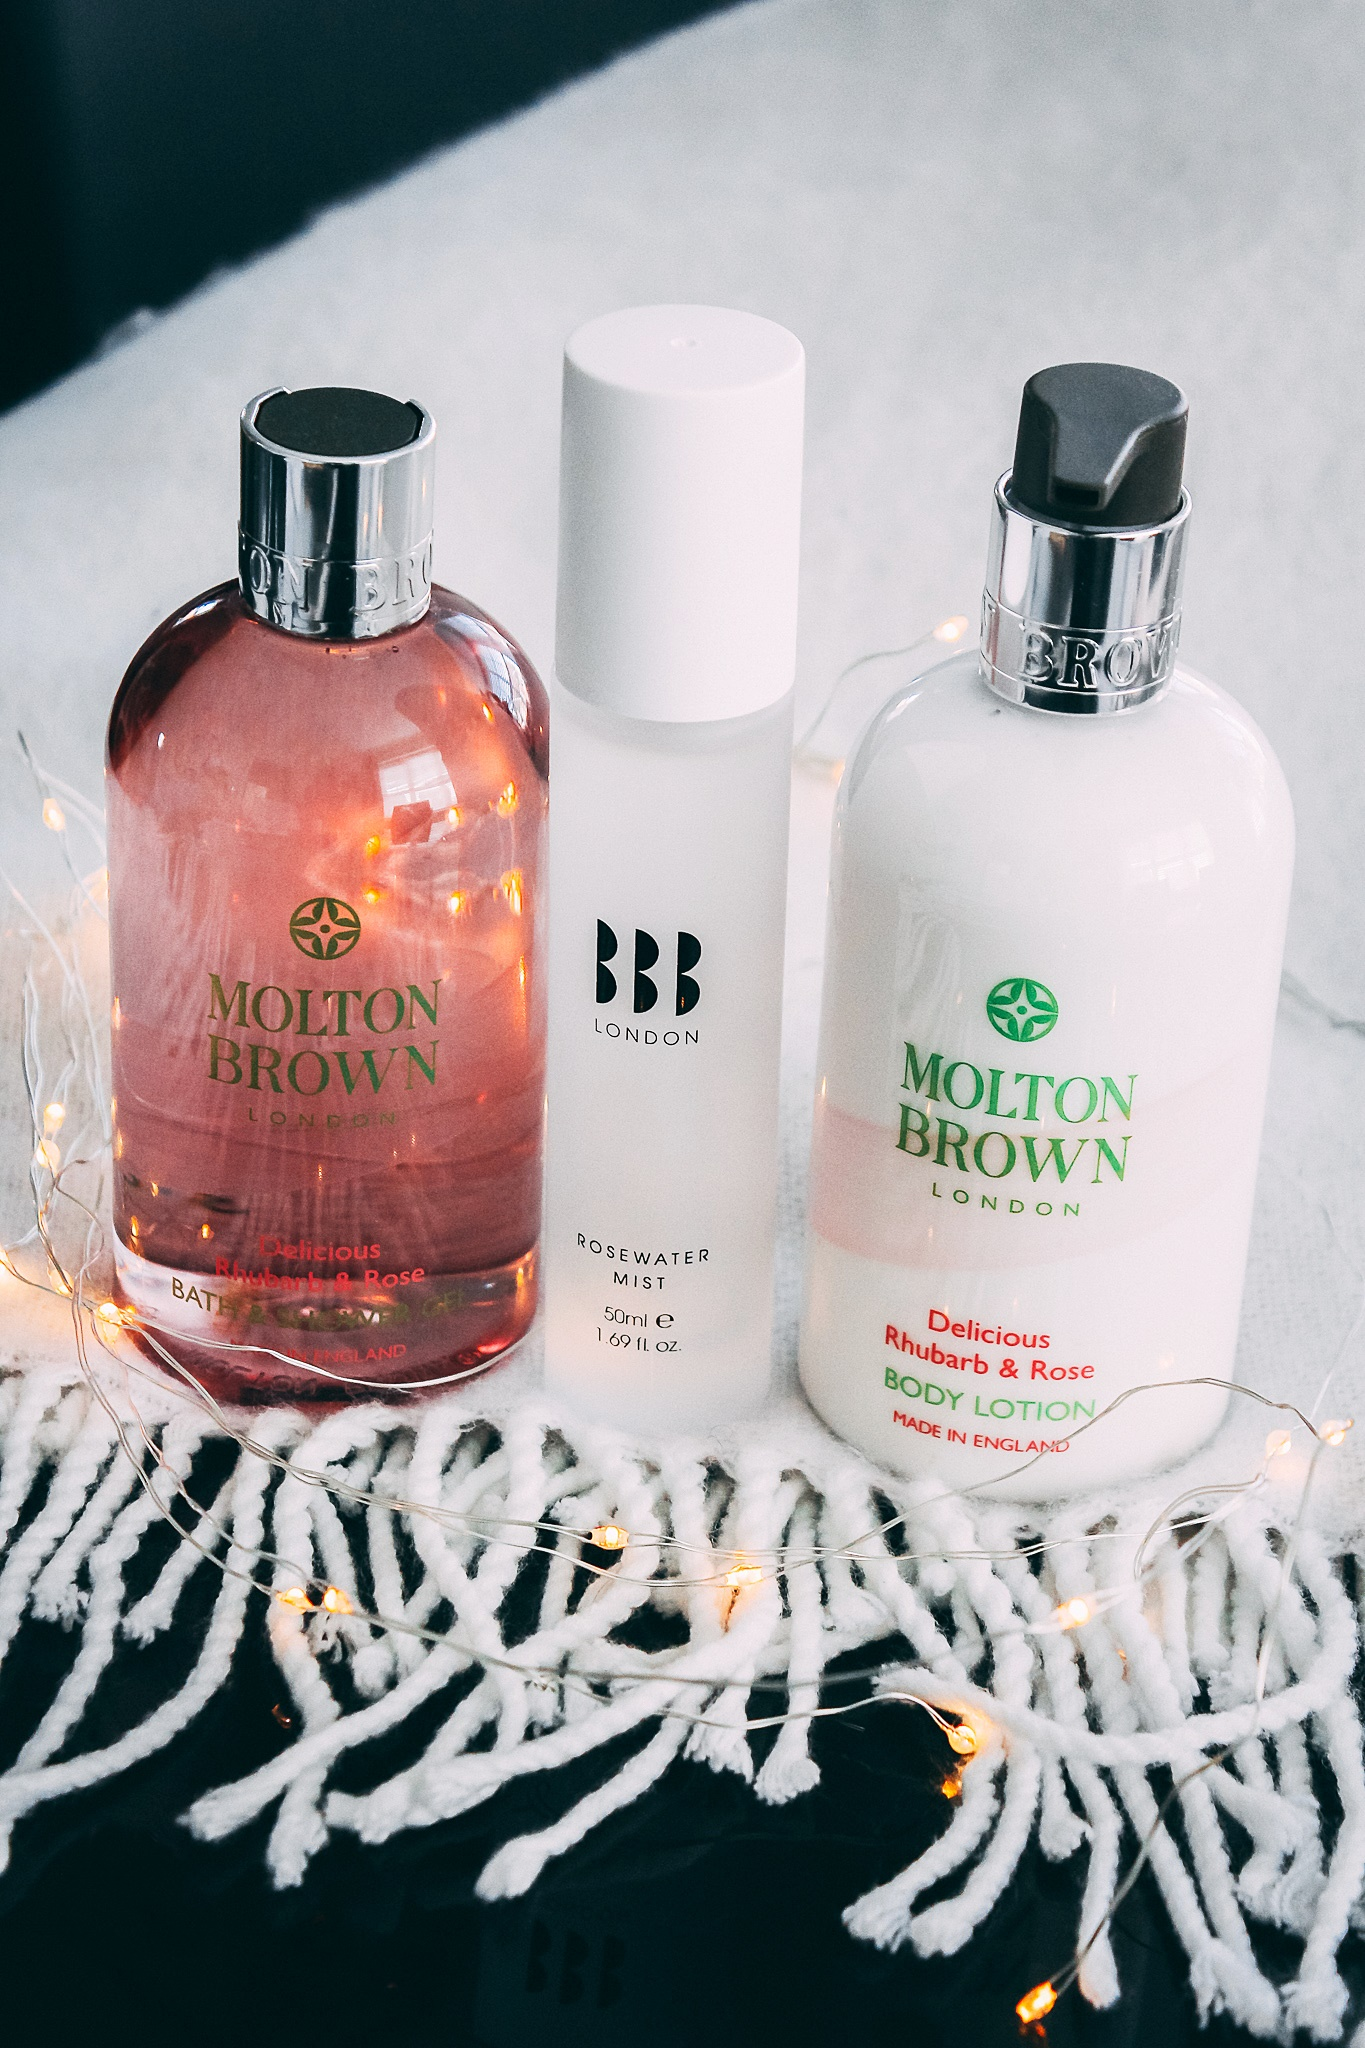 Molton Brown Delicious Rhubarb & Rose Bath & Shower Gel, bbrowbar Rosewater Mist